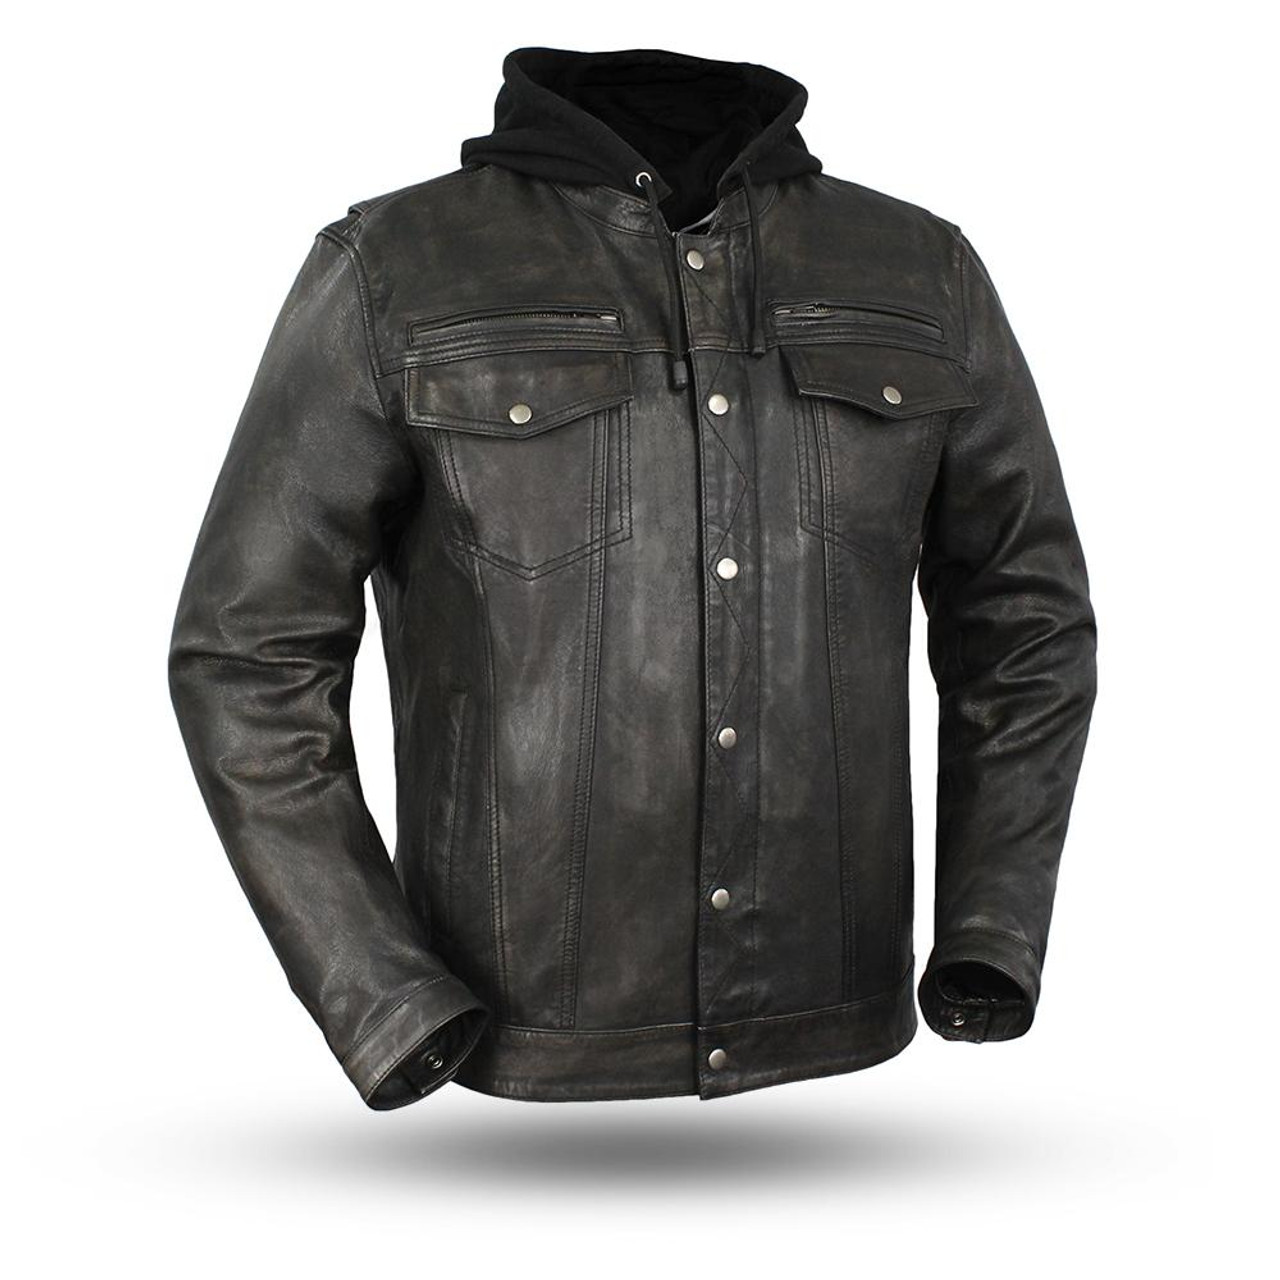 803a7f538 MEN'S MOTORCYCLE RIDING LEATHER JACKET, VENDETTA HOODY